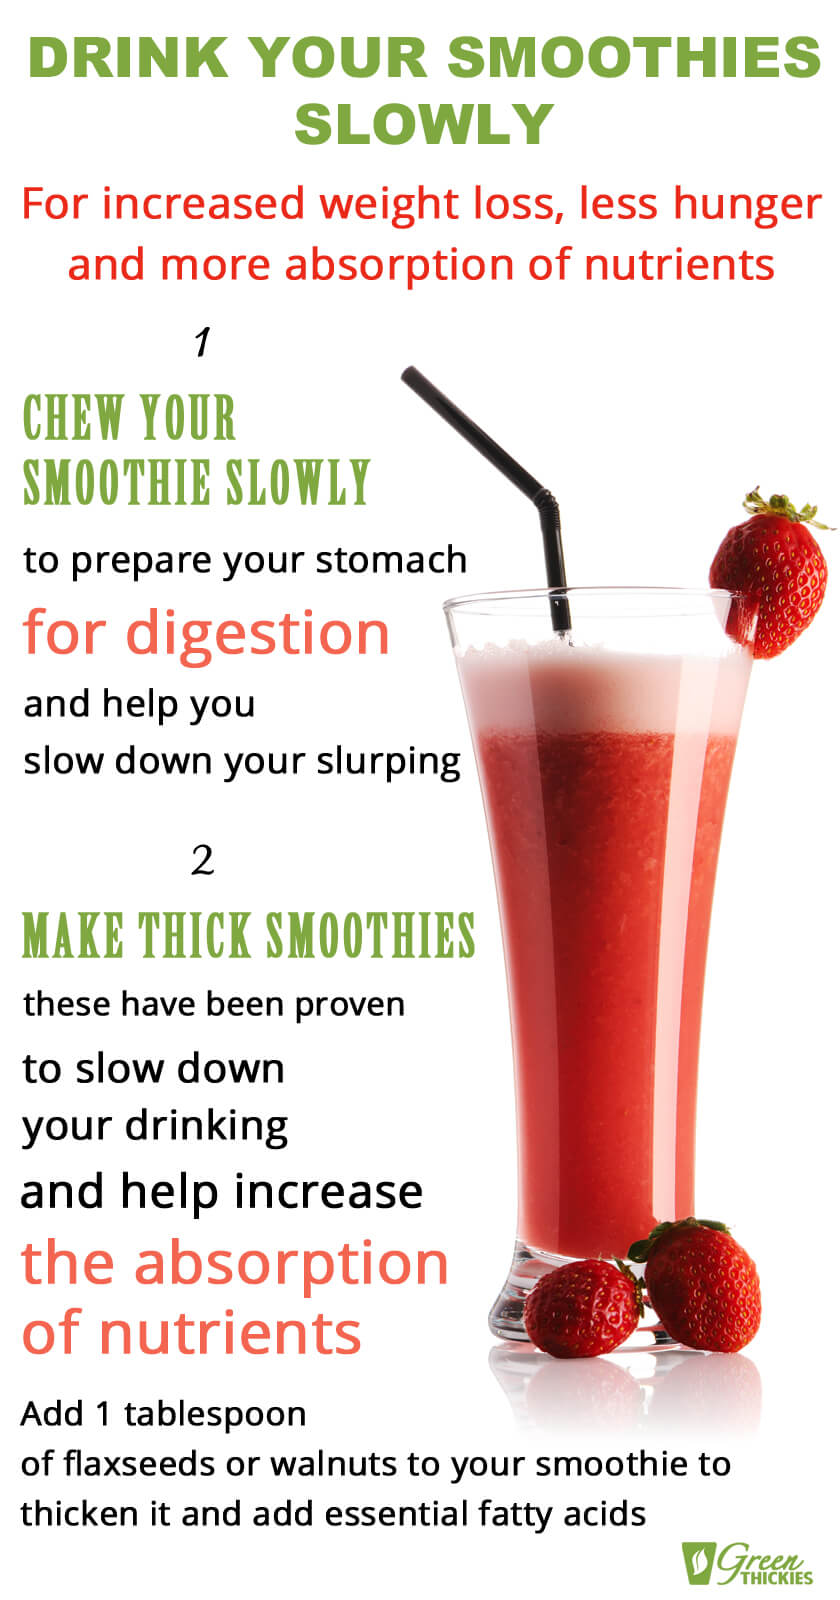 35 Best Smoothie Ingredients For Weight Loss (List & Recipes); Why you should drink you smoothies slowly